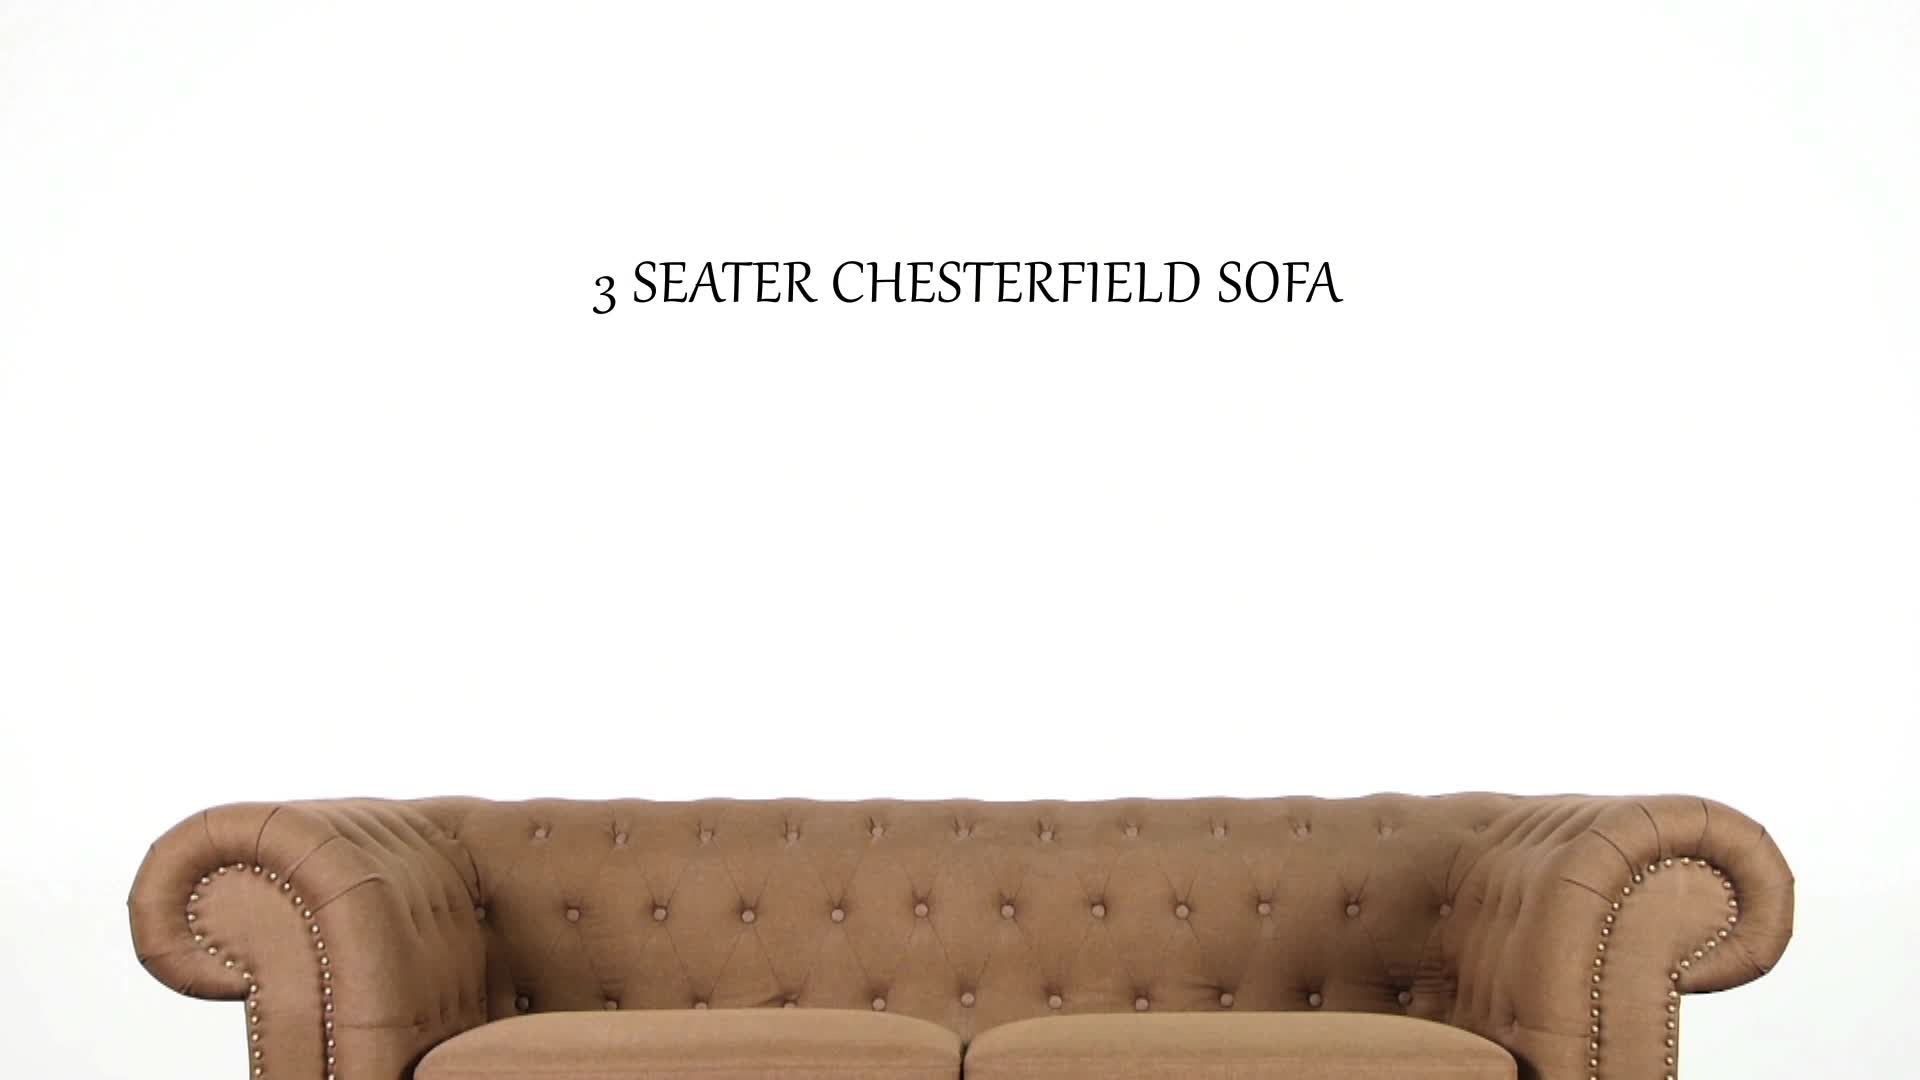 Buy A Chesterfield Sofa Classic Fabric Chesterfield Button Tufted Sofa Set Design